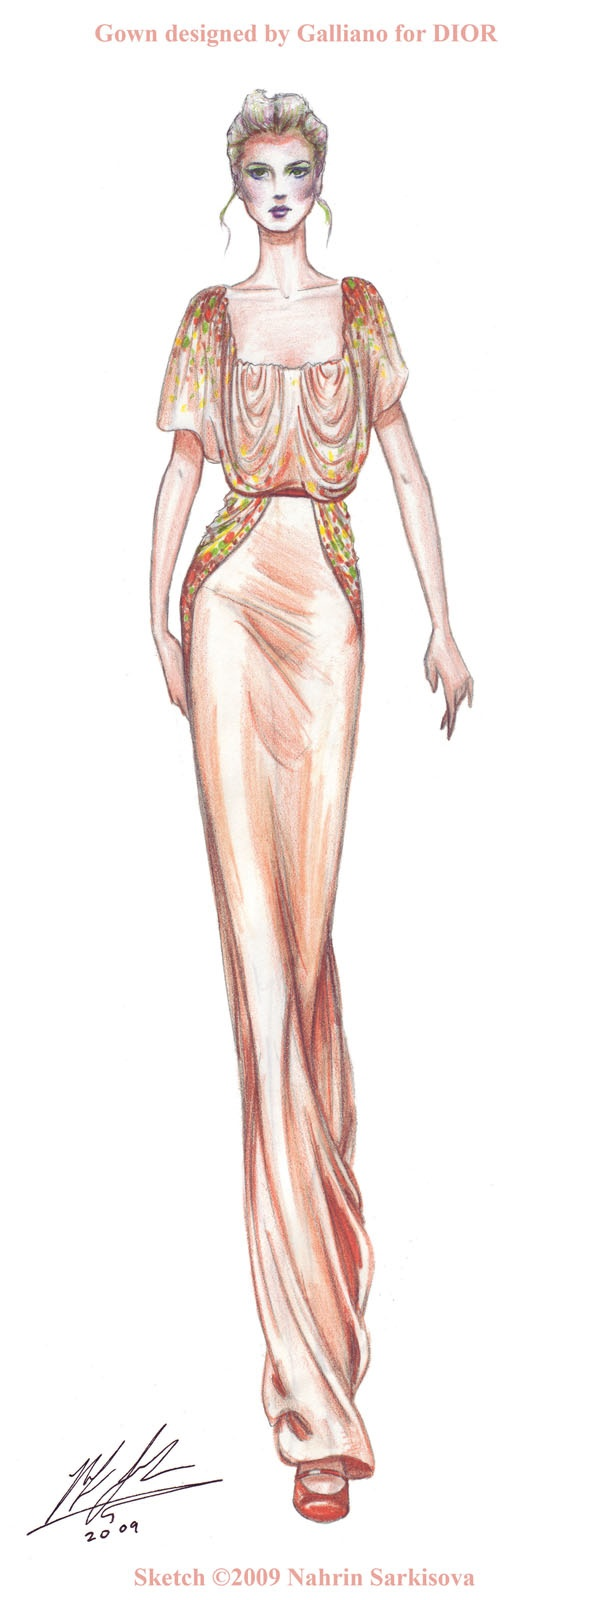 Nahrin Sarkisova: Another sketch of mine I did of DIOR gown.